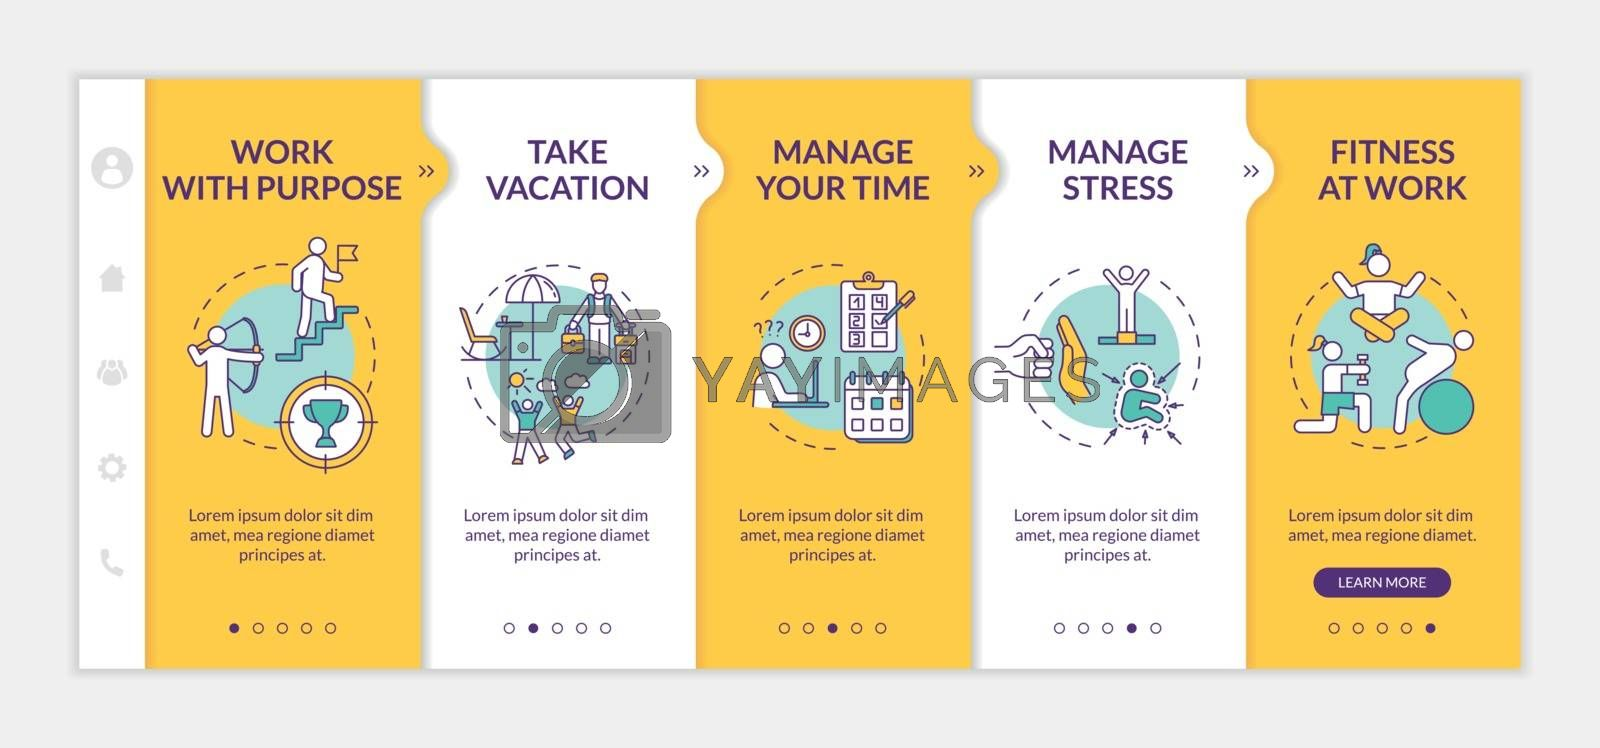 Avoid burnout onboarding vector template. Take vacation. Keep satisfaction level. Stretching in office. Responsive mobile website with icons. Webpage walkthrough step screens. RGB color concept by bsd